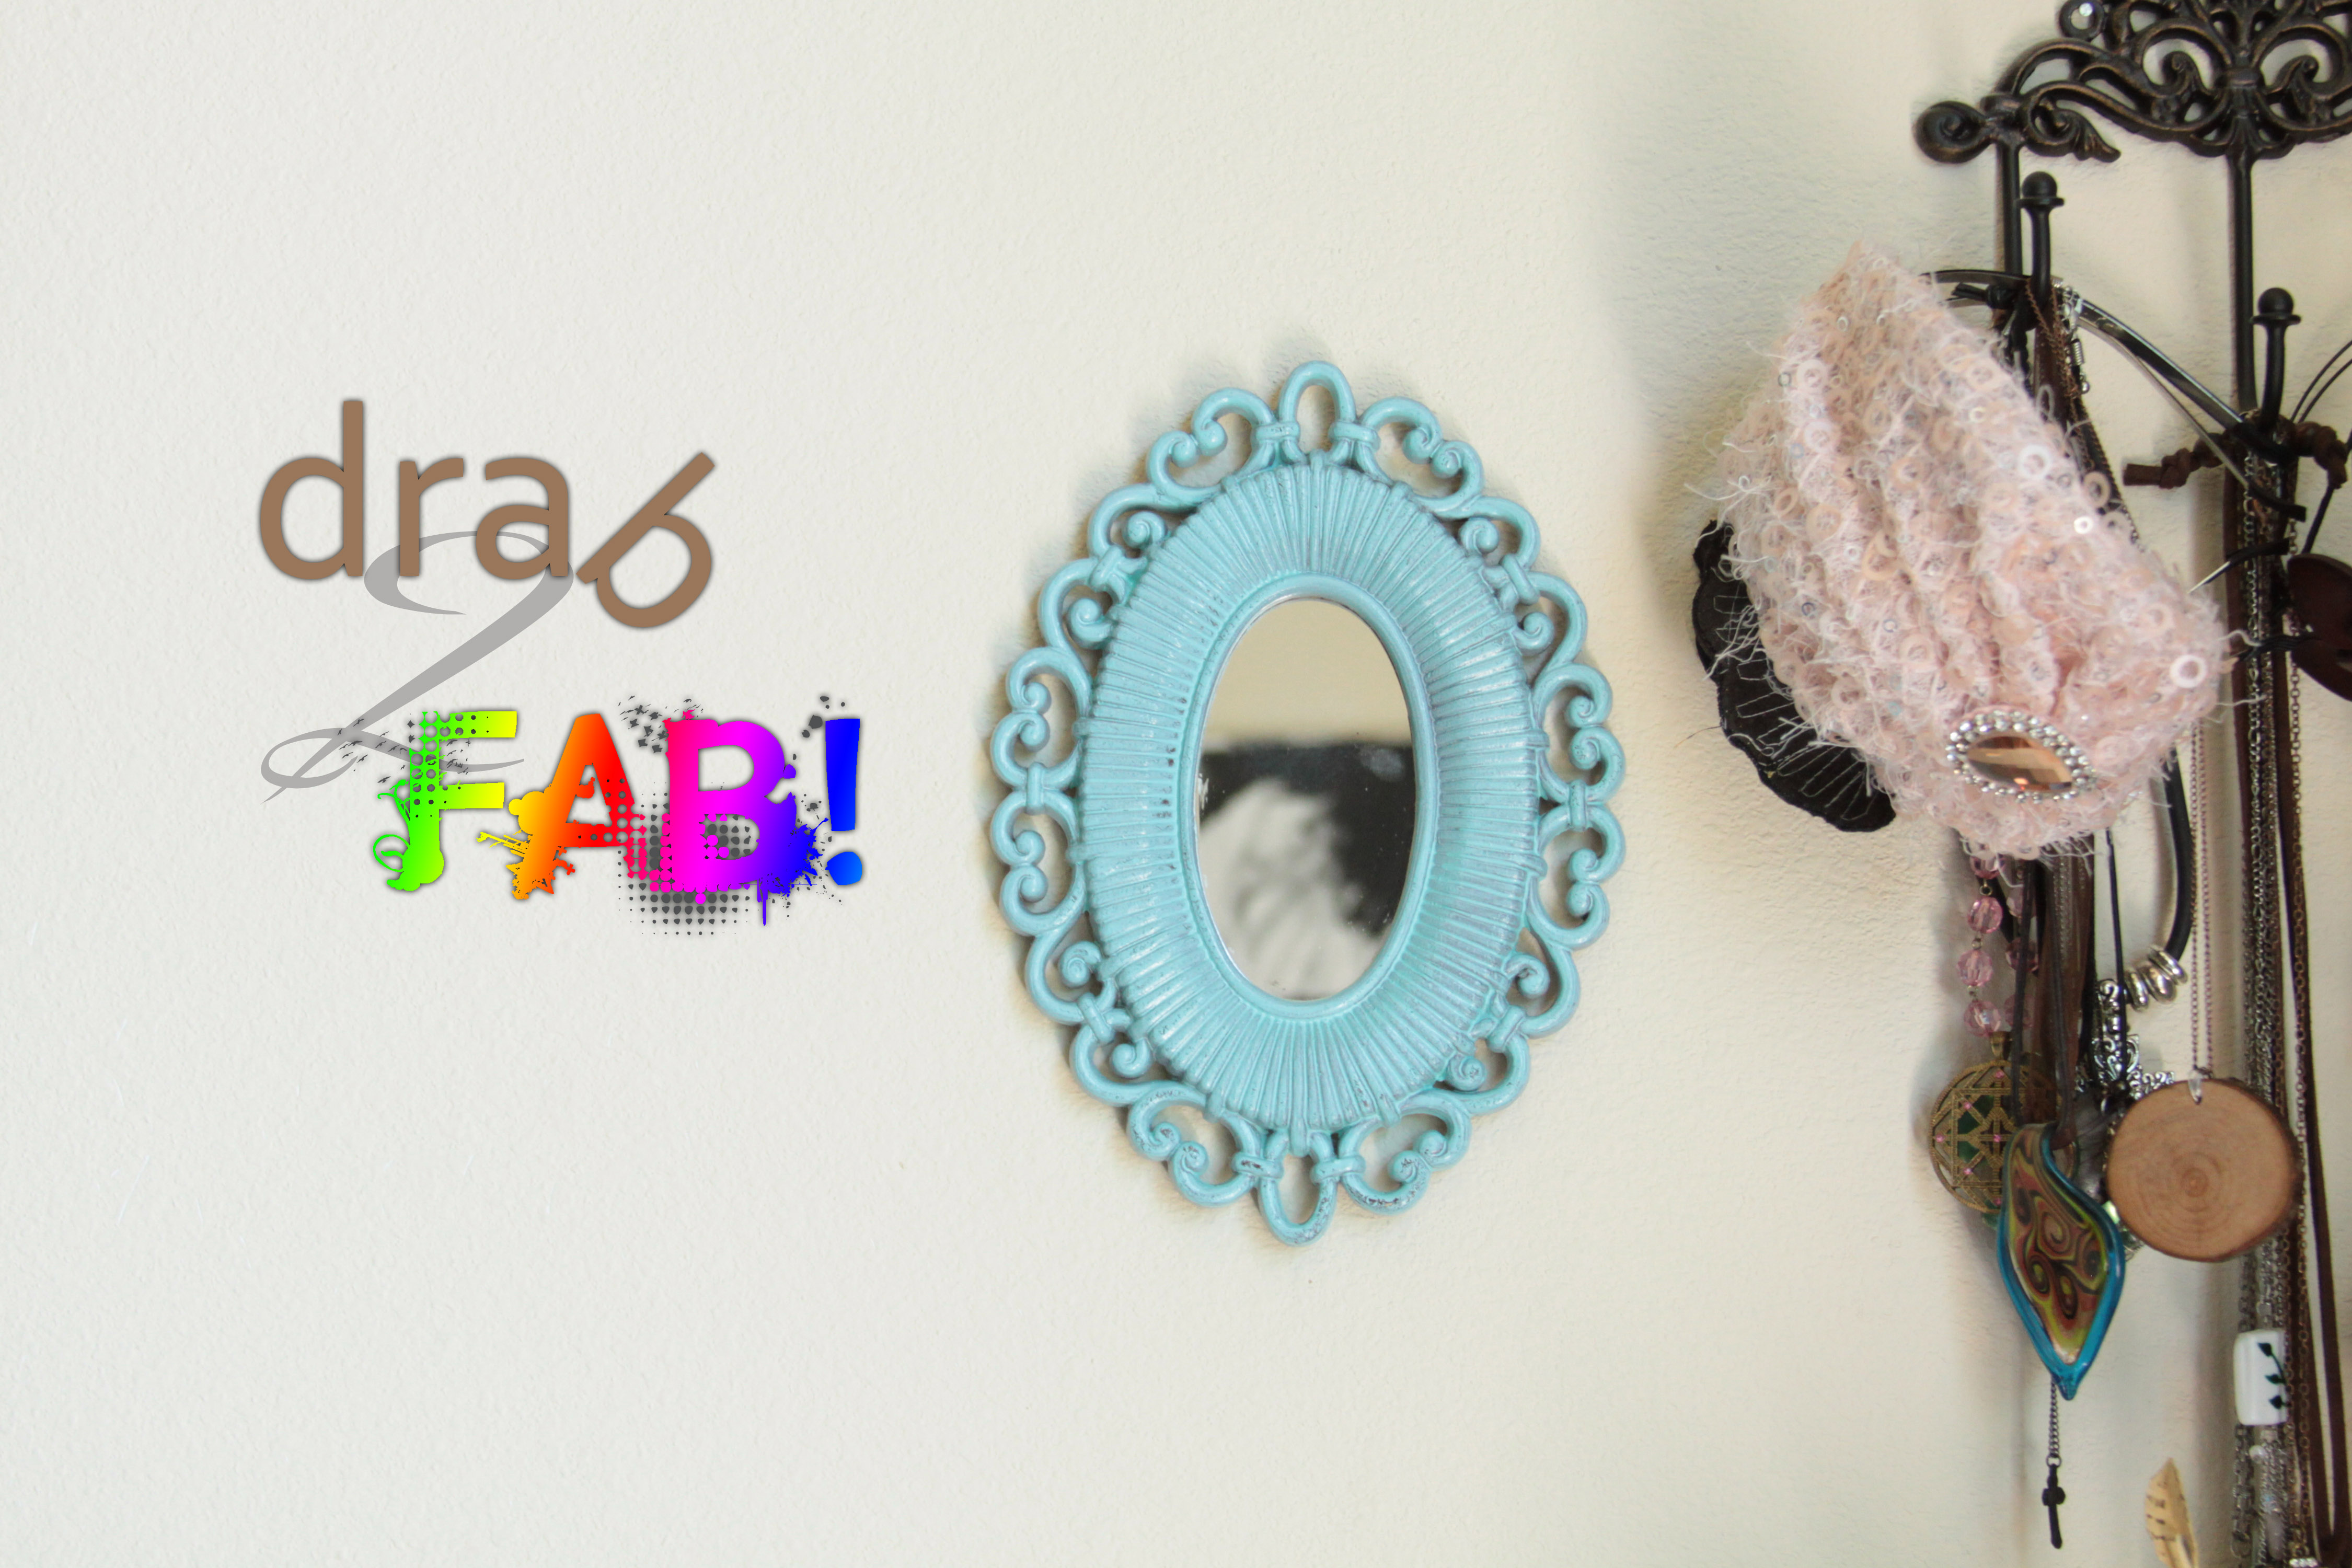 Drab to Fab: Upcycled Mirror